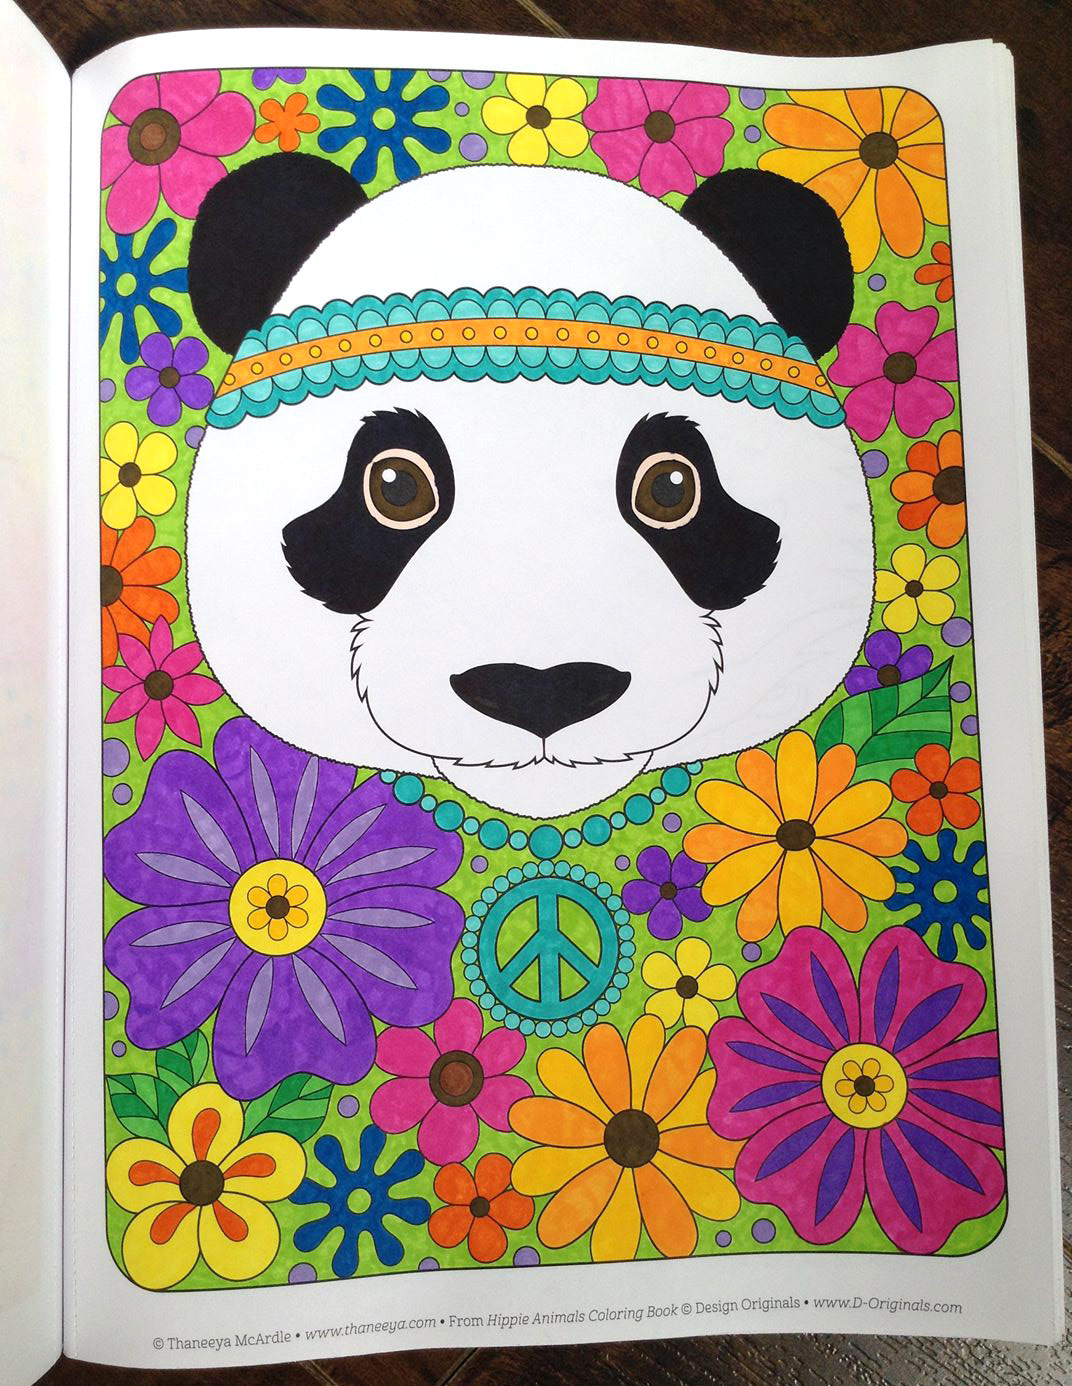 panda-coloring-page-by-Thaneeya-McArdle-colored-by-TammyM.jpg